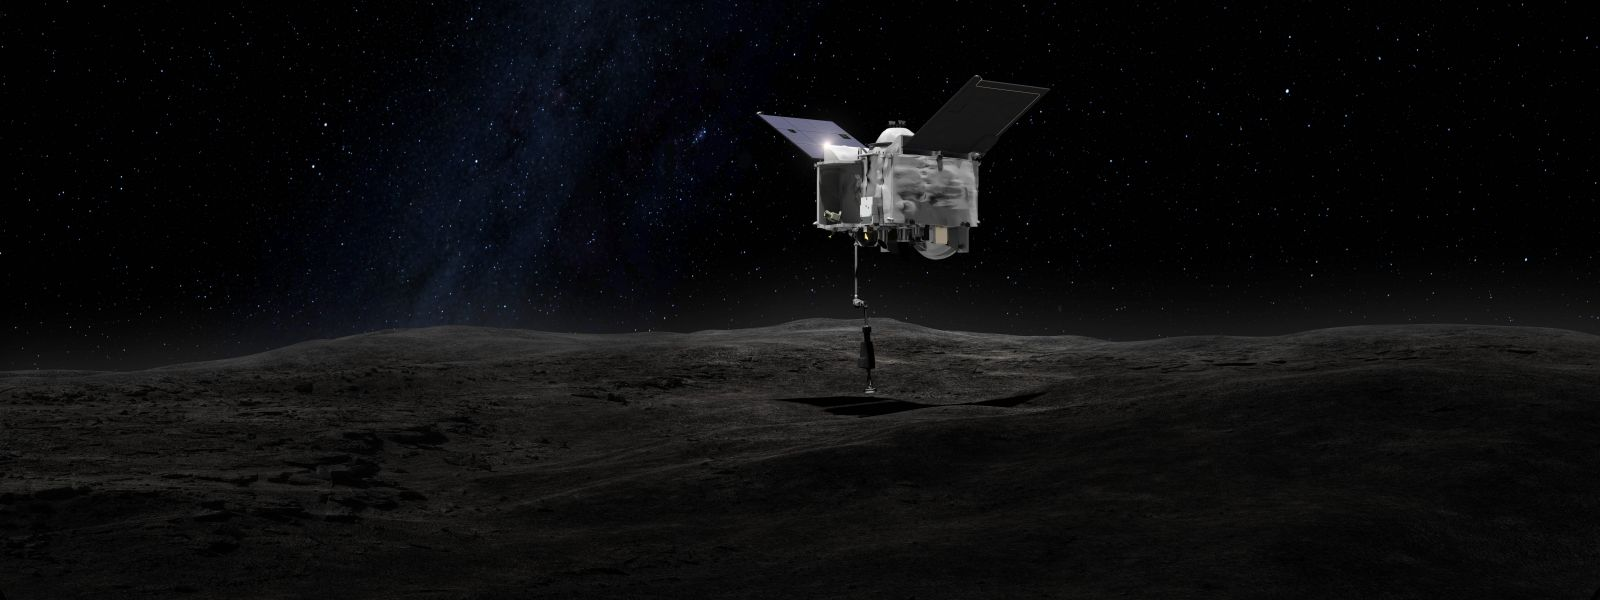 An artist's rendering of the OSIRIS-REx Touch-And-Go Sample Arm Mechanism collecting a sample of asteroid Bennu. Photo Credit: NASA / Goddard Space Flight Center